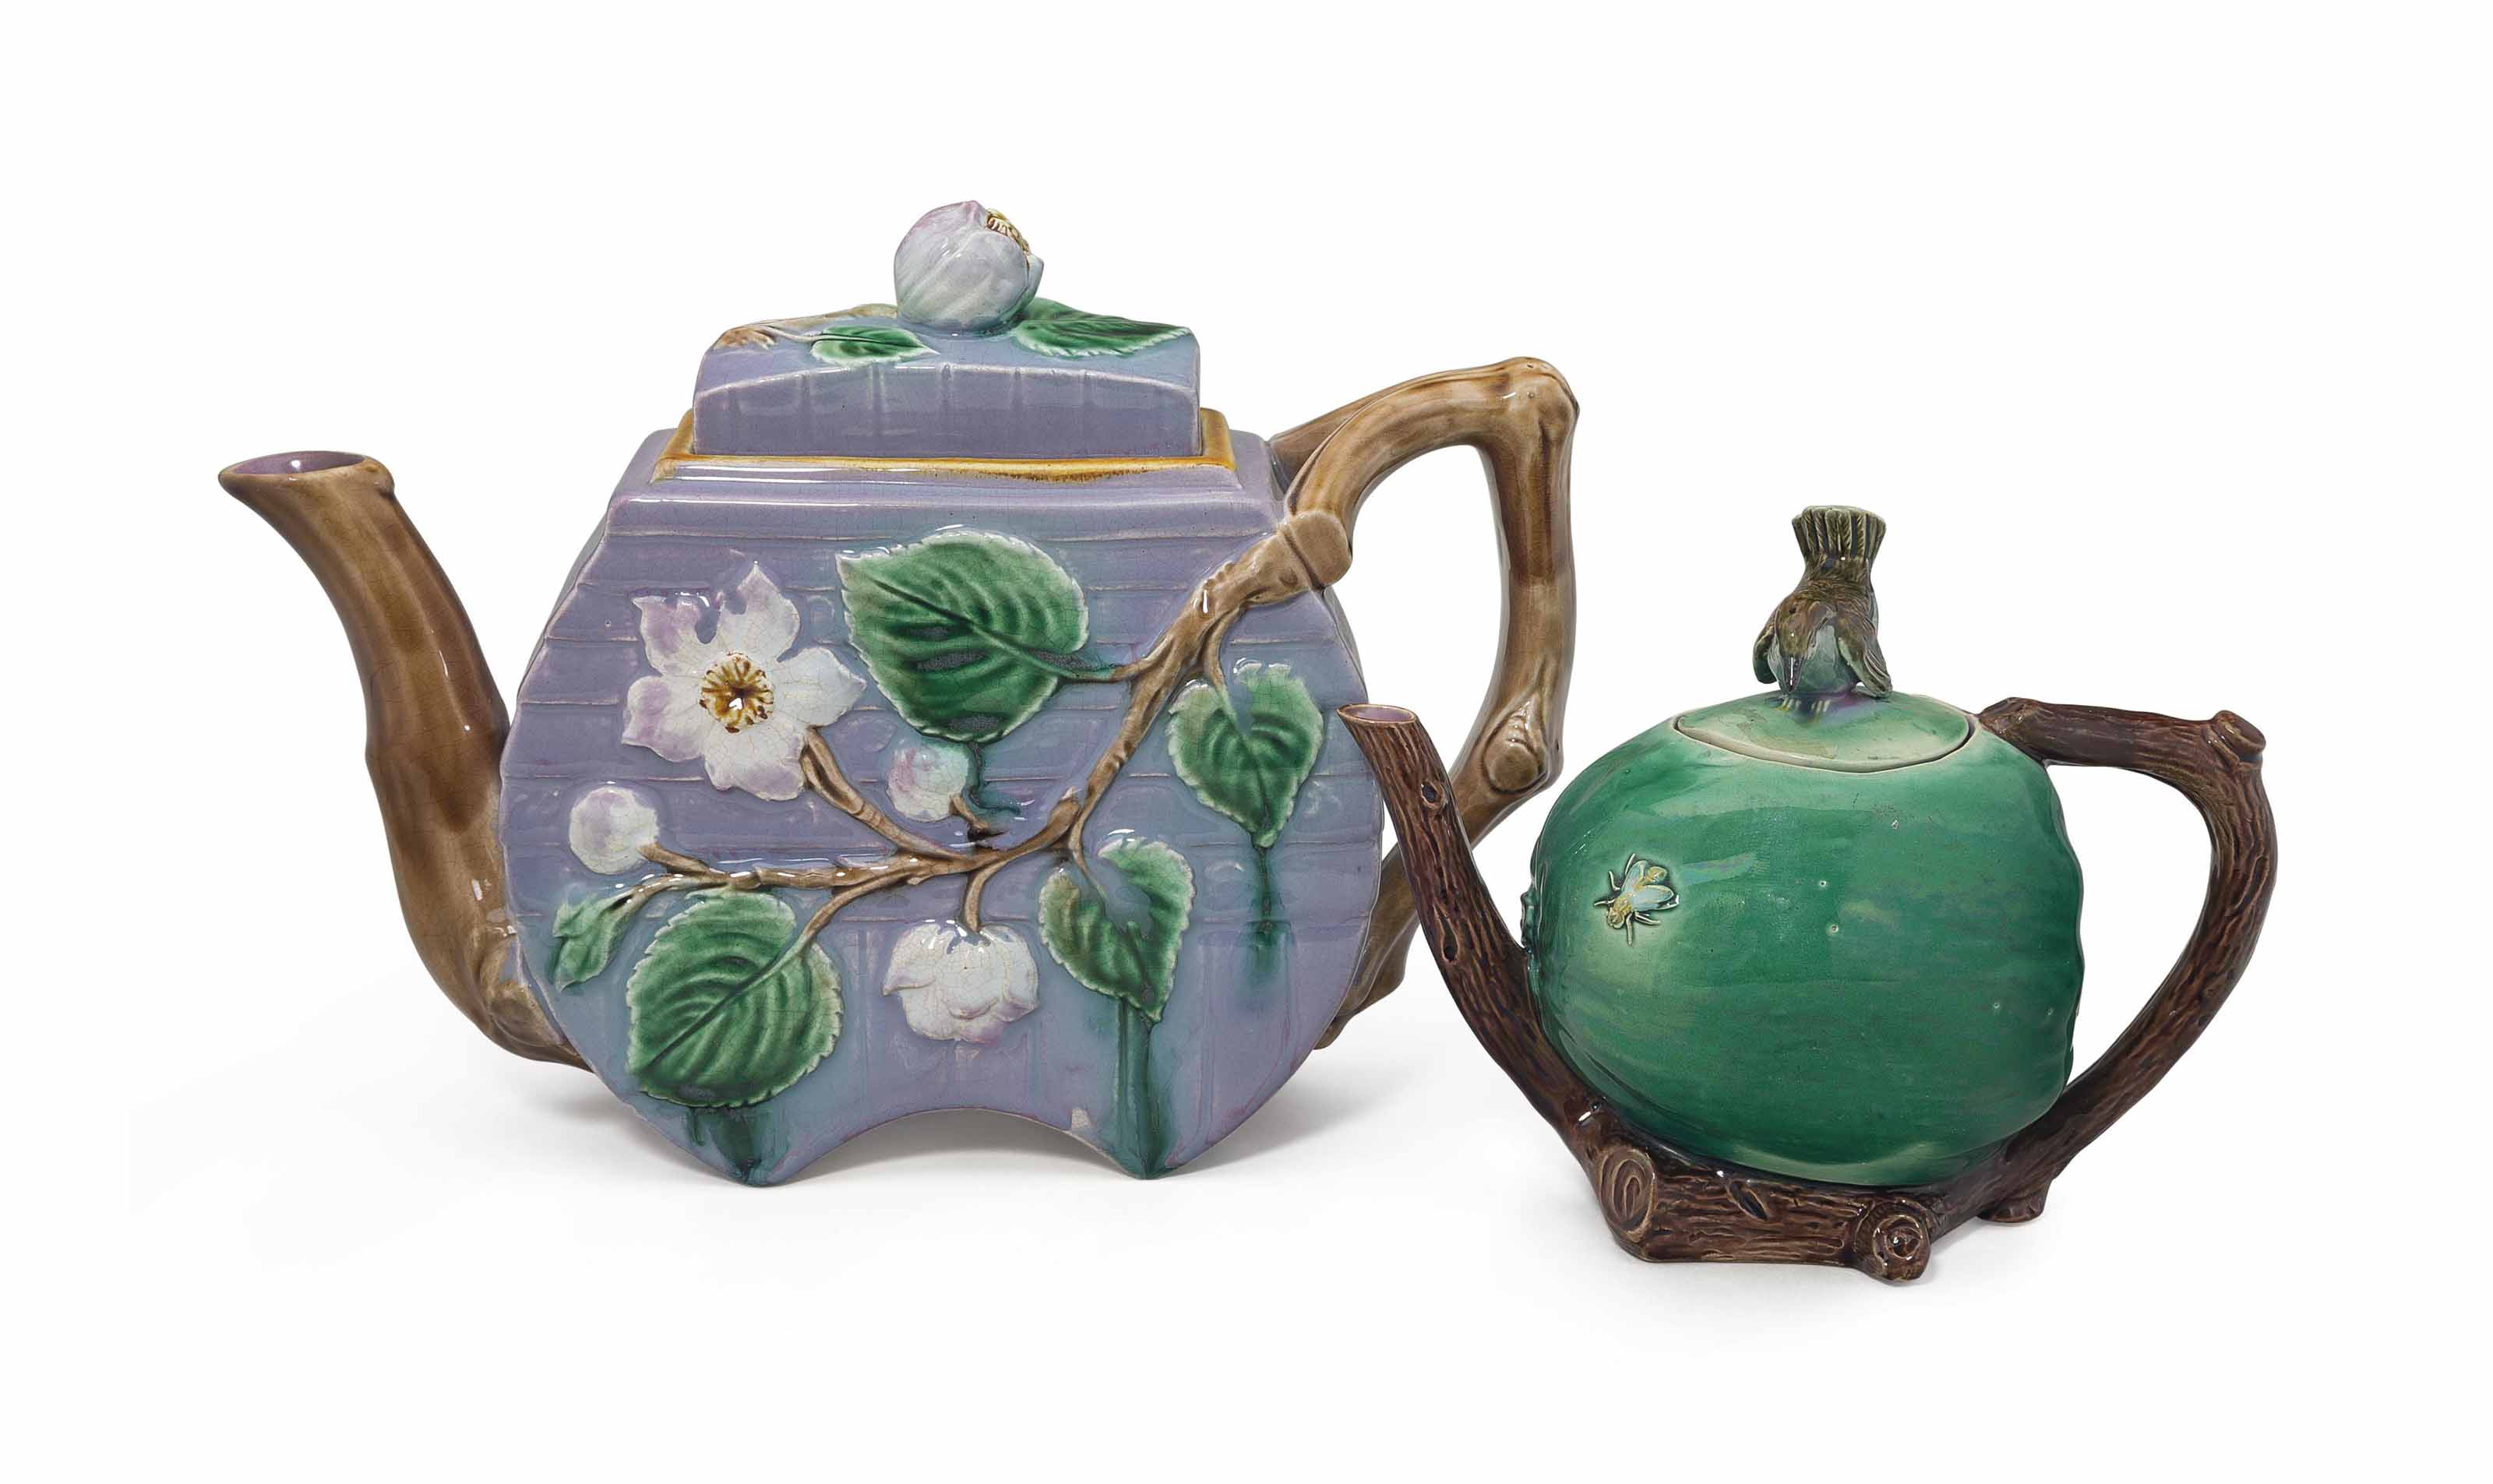 TWO ENGLISH MAJOLICA TEAPOTS